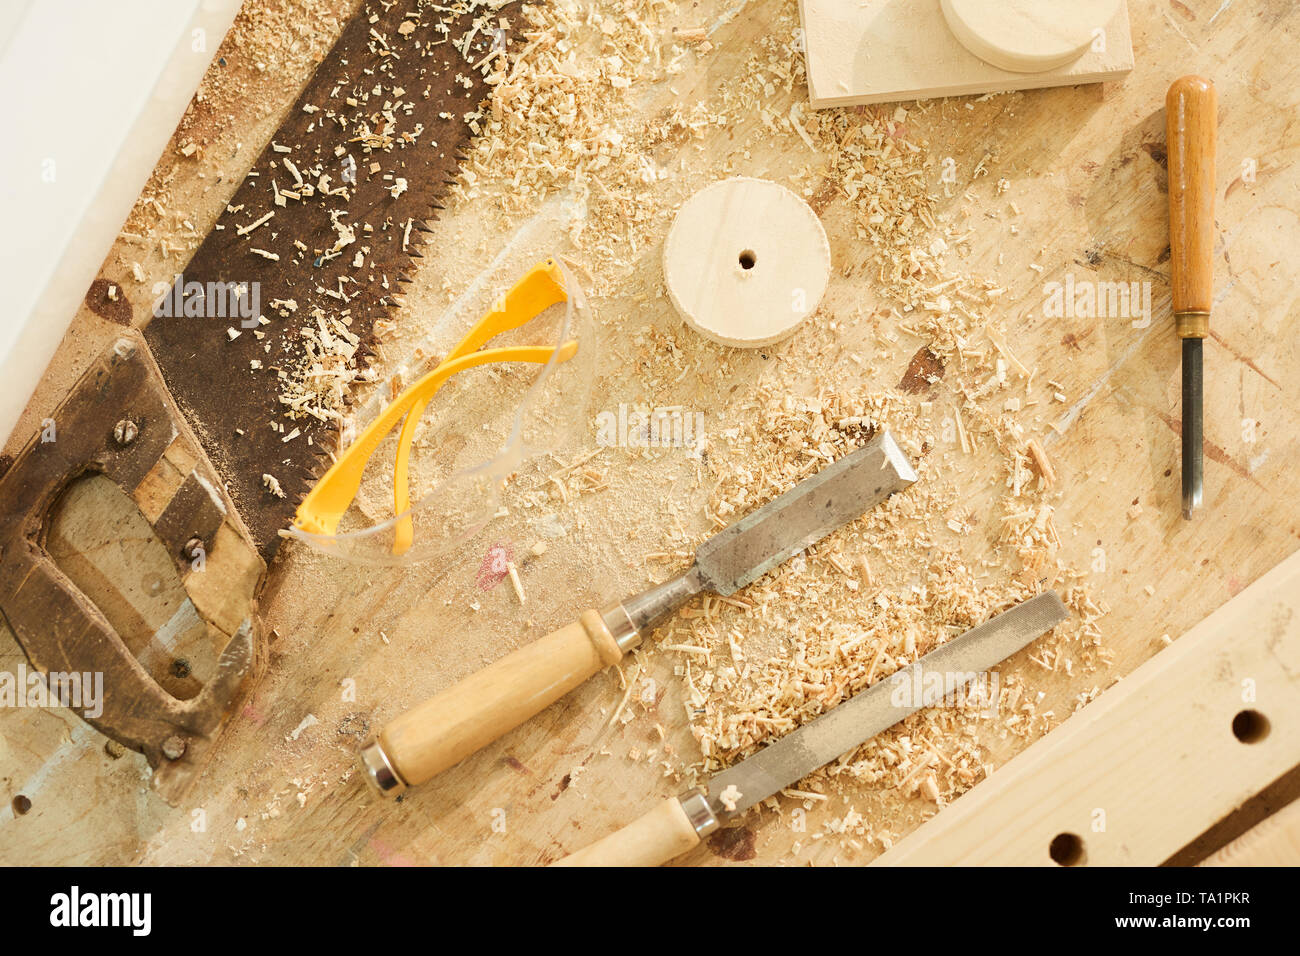 Top view background of carpenters tools on table in workshop dusted with wood shavings, copy space - Stock Image